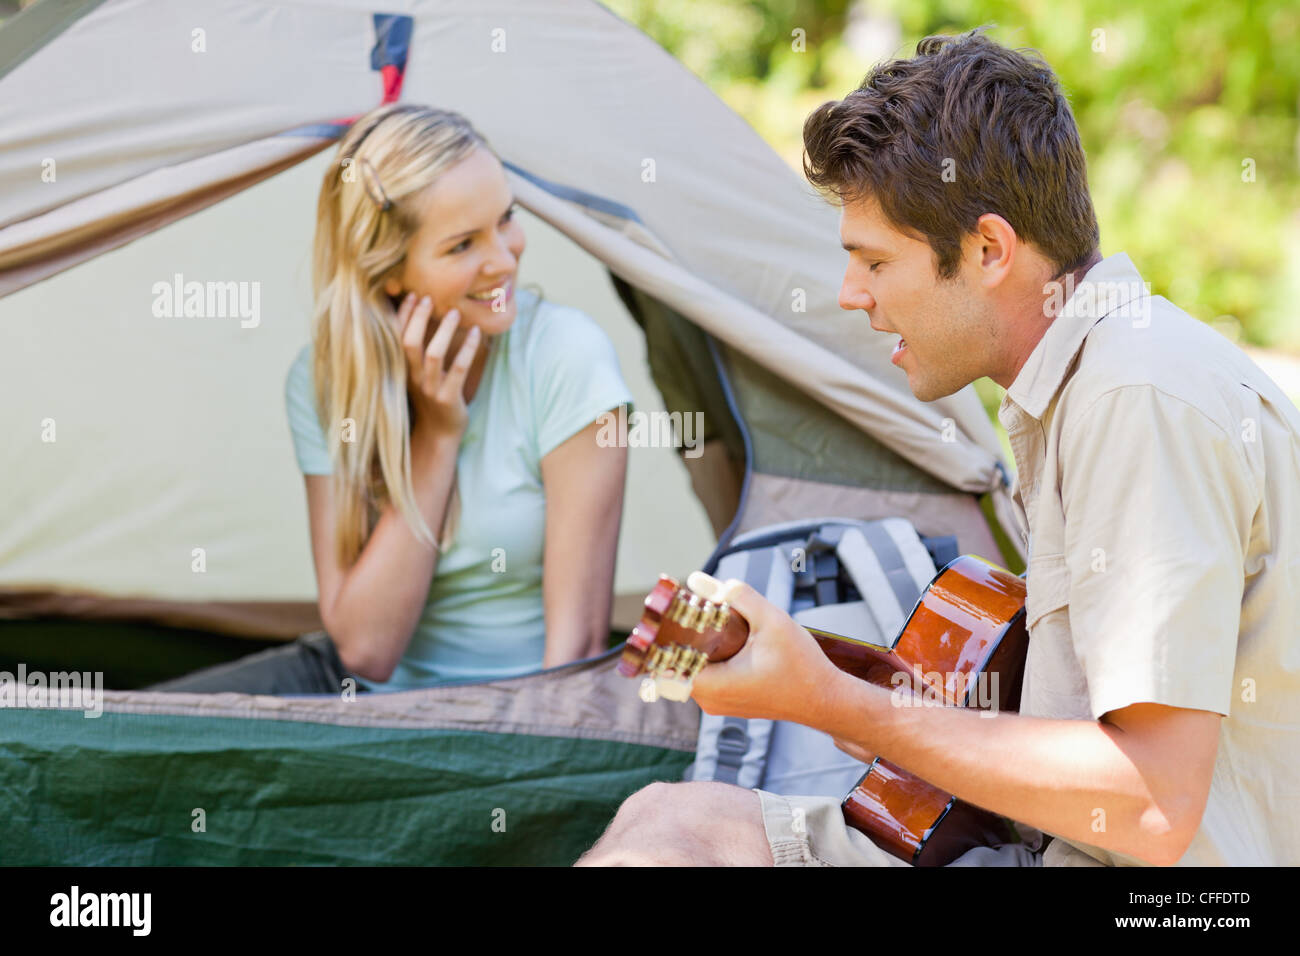 Man sings and plays guitar as his girlfriend smiles - Stock Image